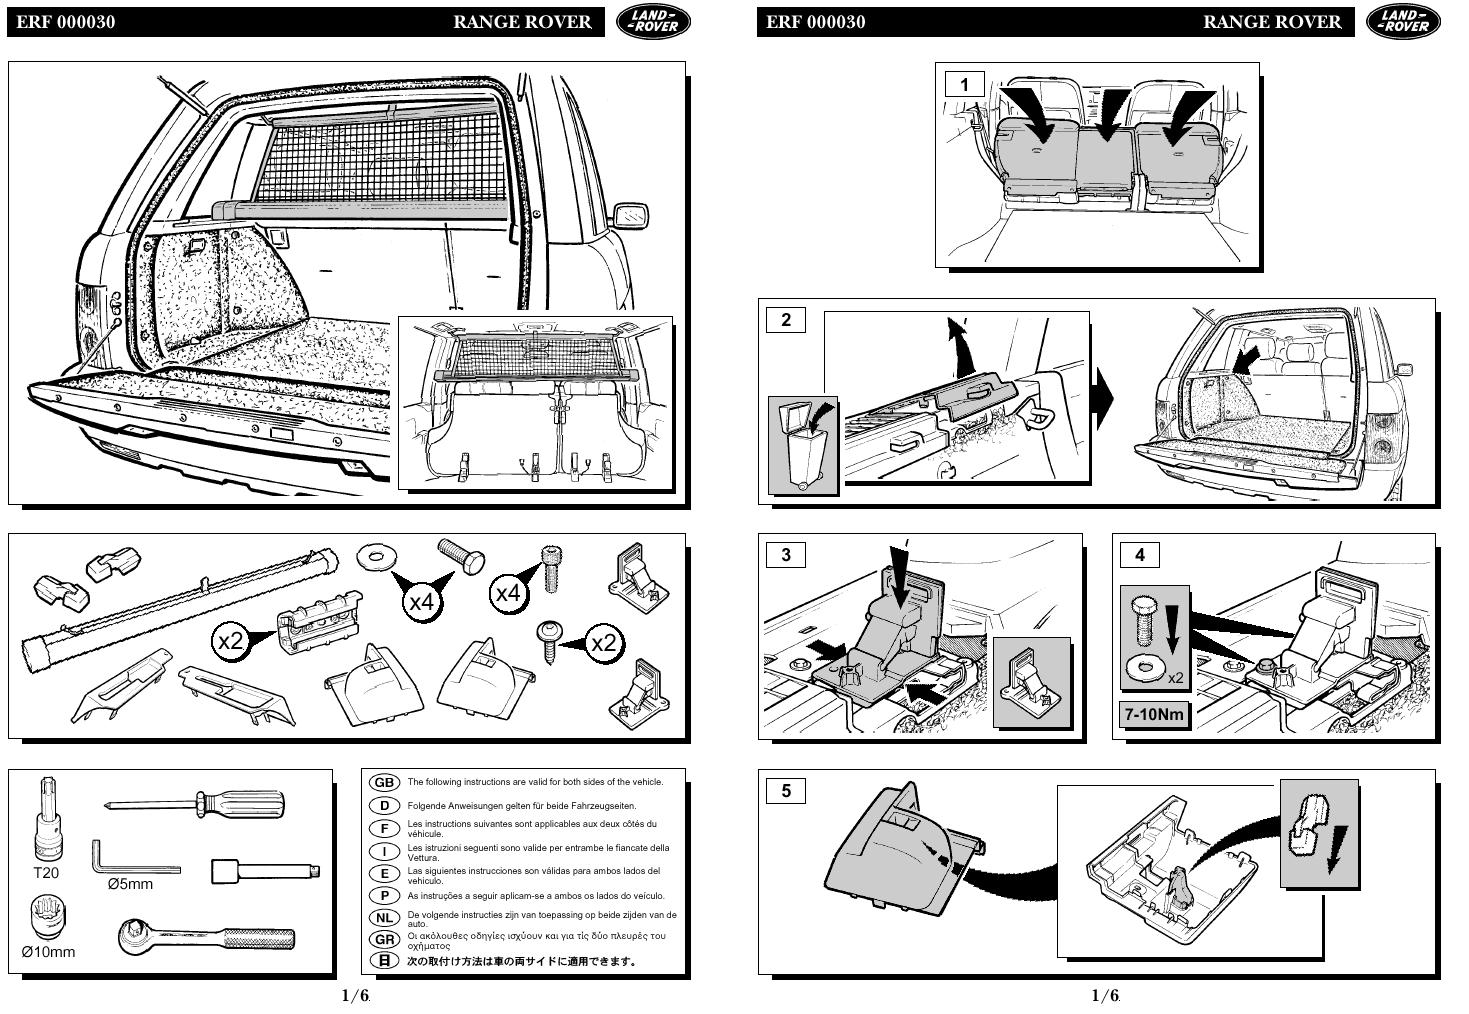 Evoque Range Rover Wiring Diagrams